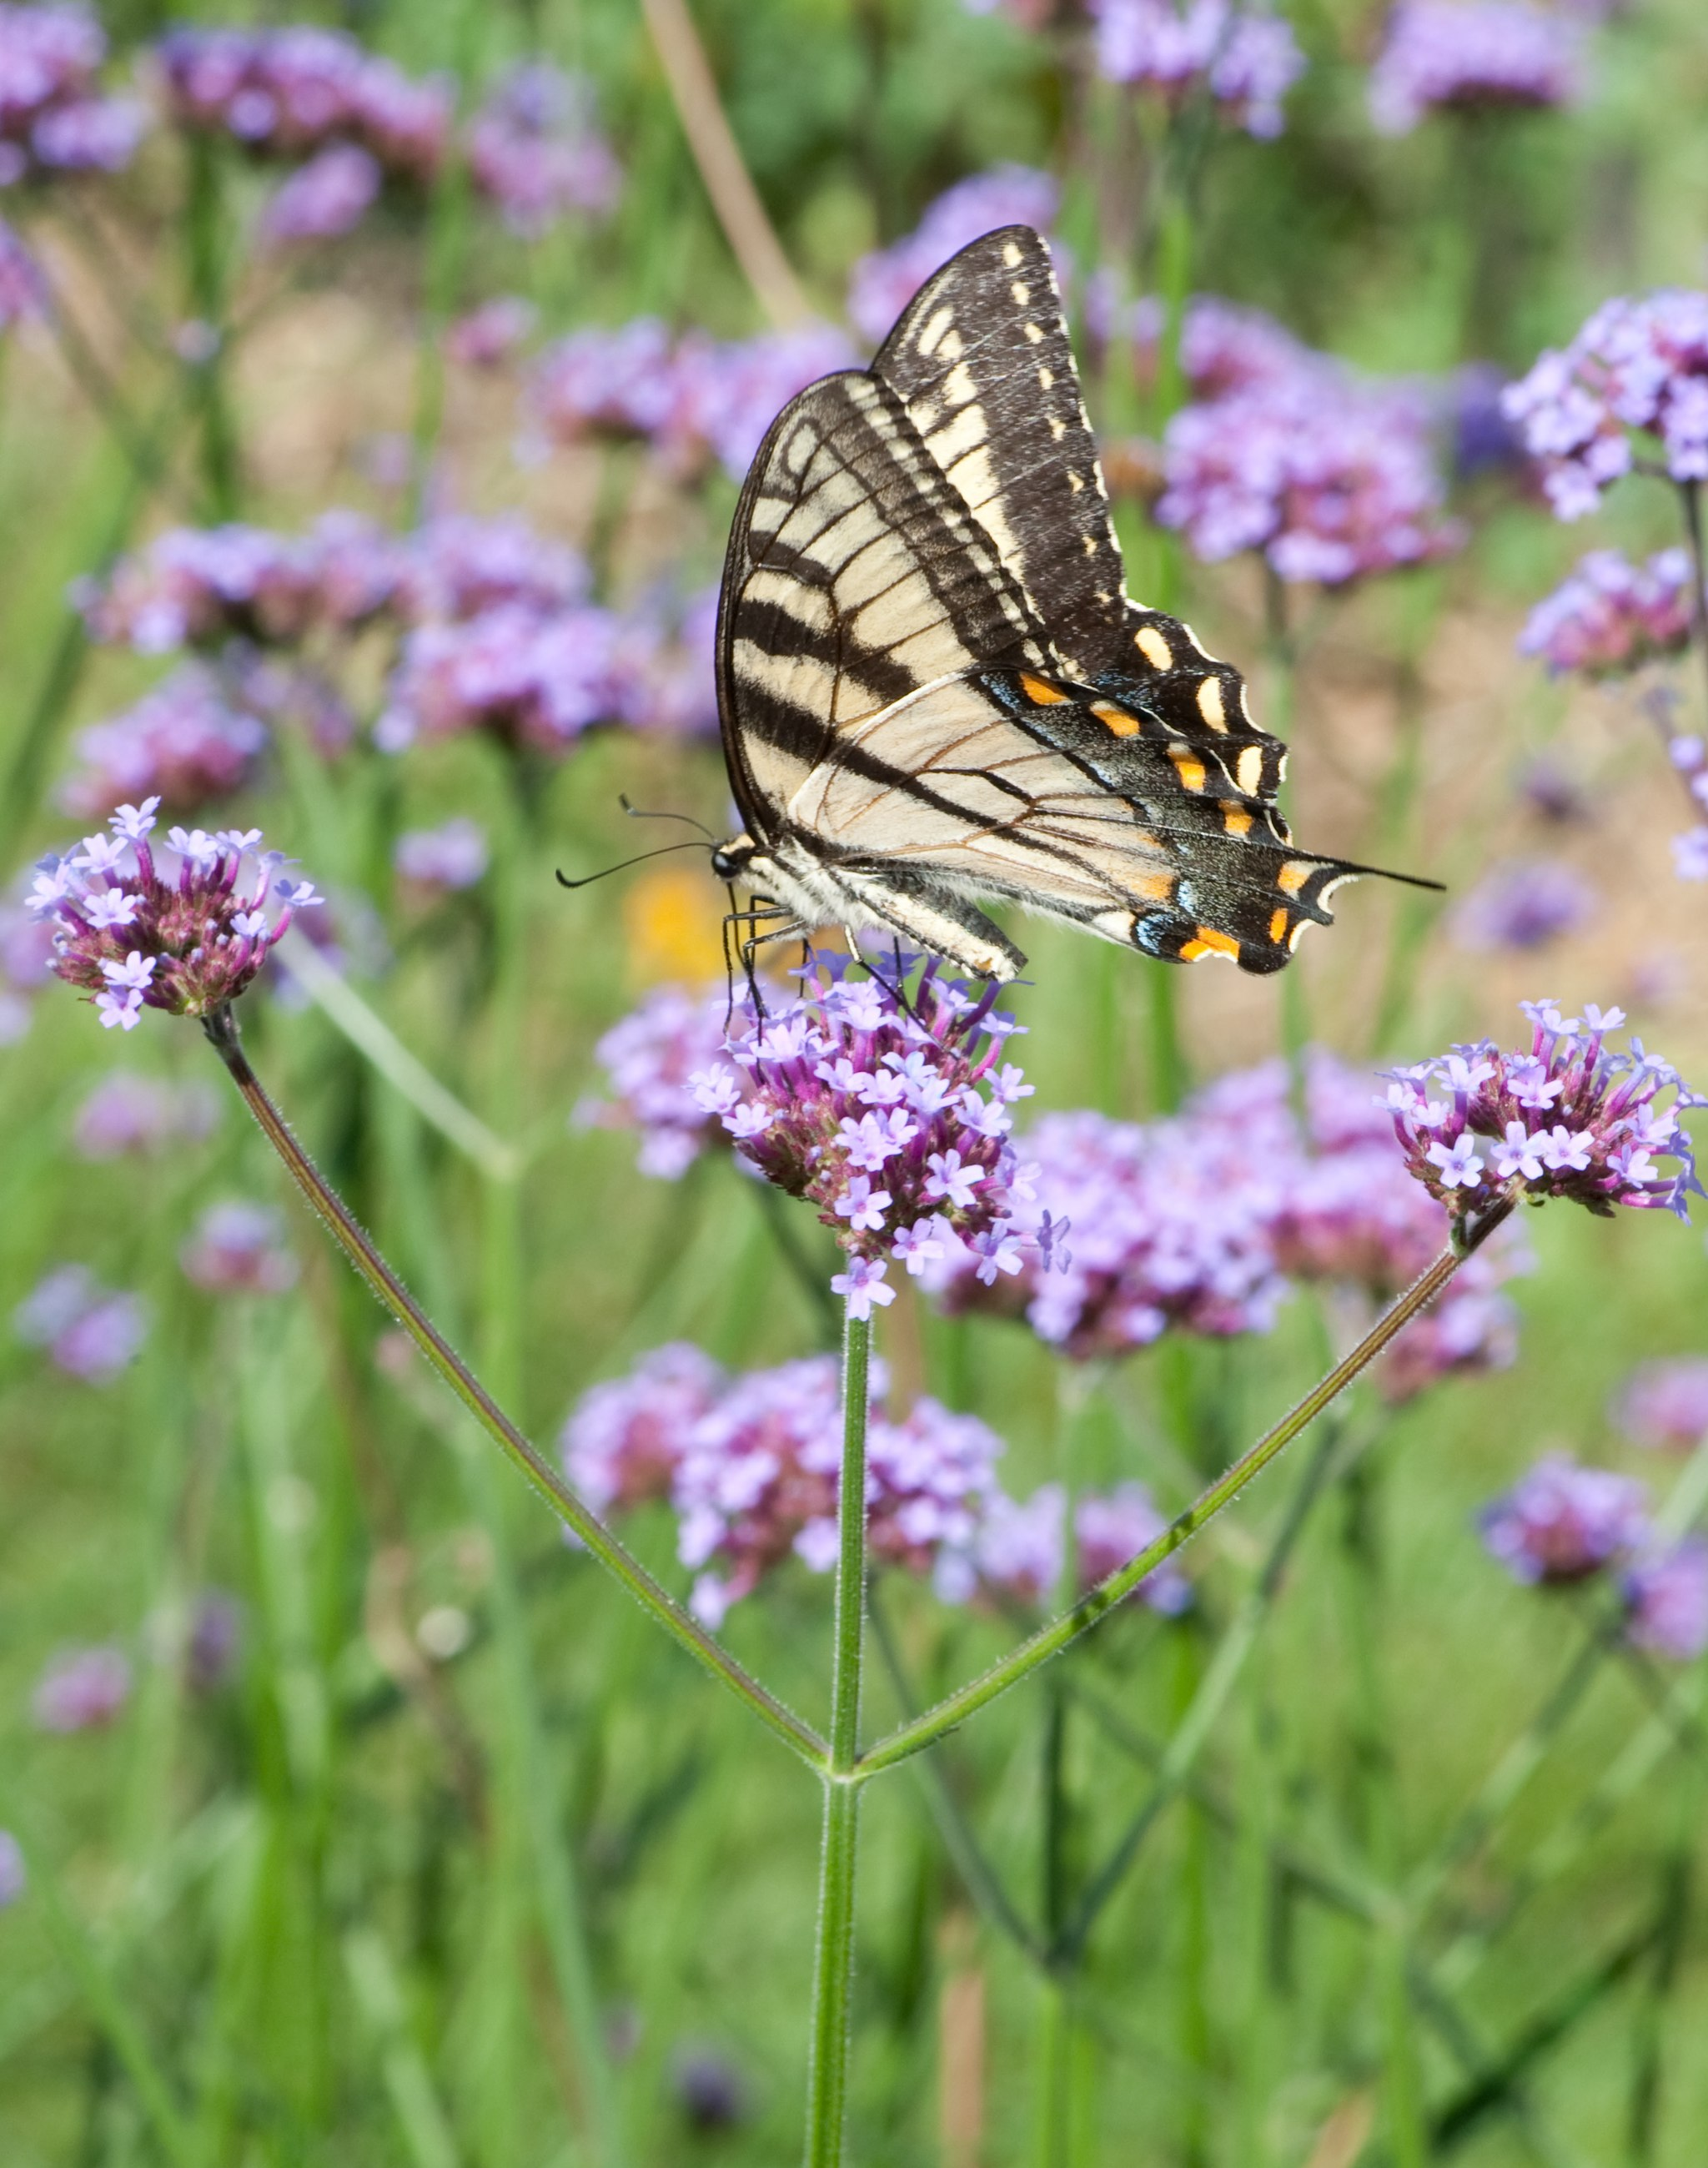 Anise swallowtail butterfly on  Verbena bonariensis  flowers.